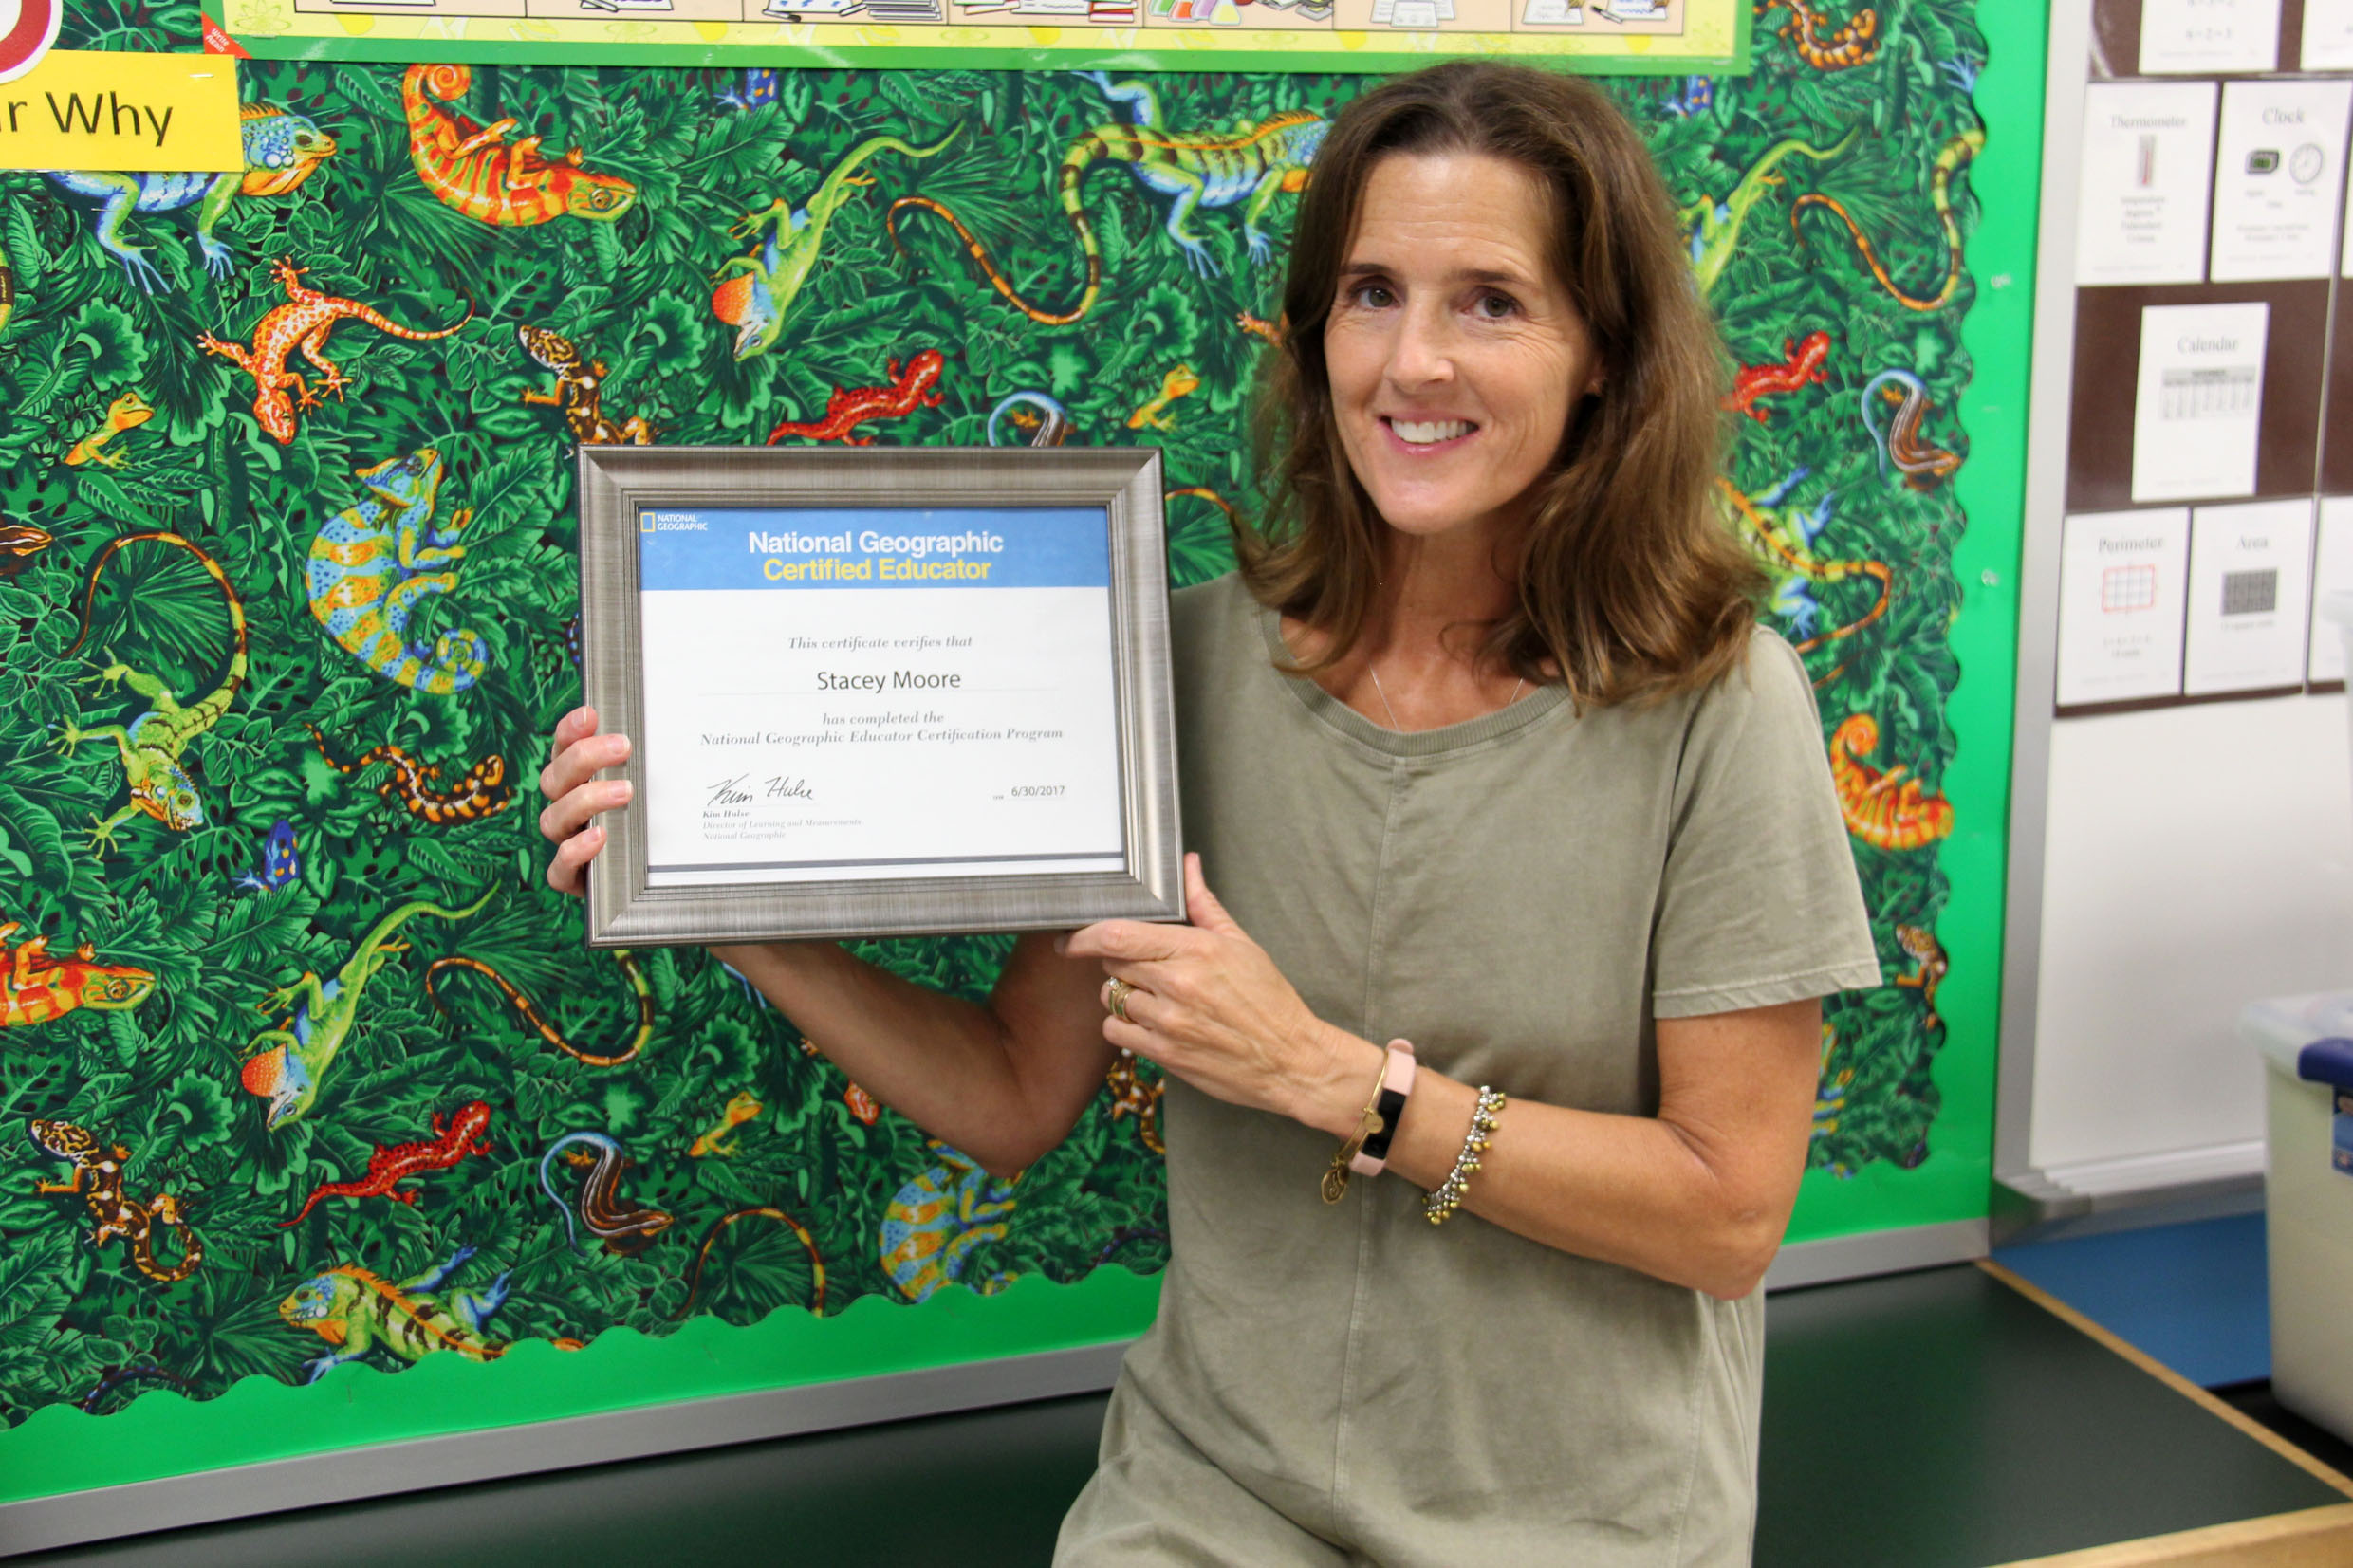 Moore Becomes First Vbcps National Geographic Certified Educator